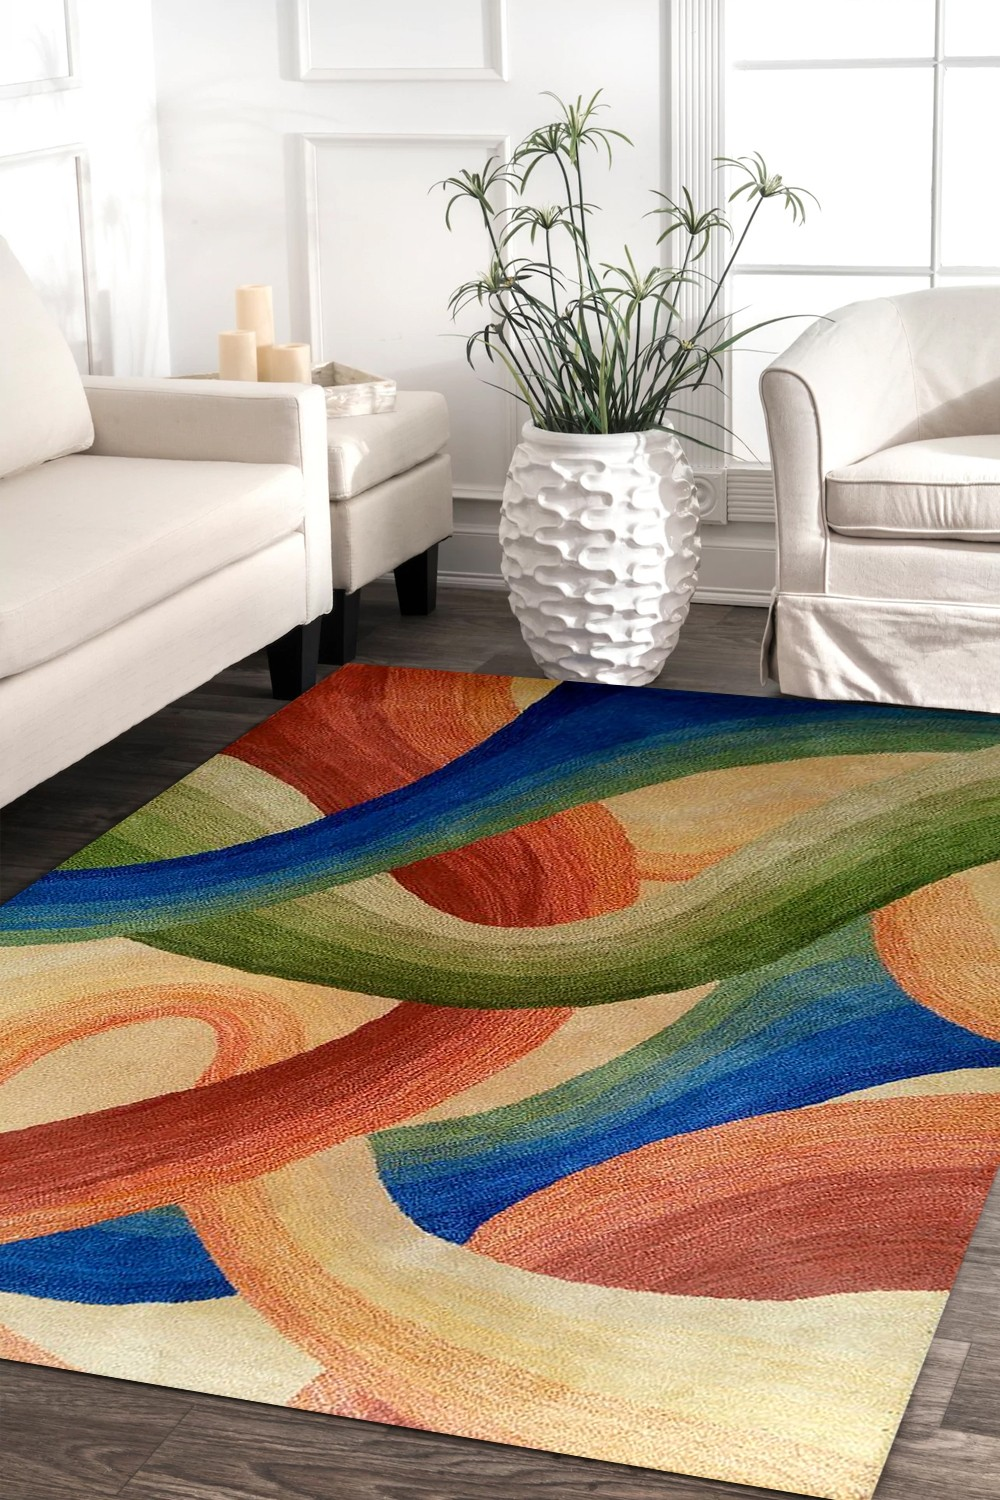 Shop Beautiful Abstract Art Modern Hand Tufted Carpet Online